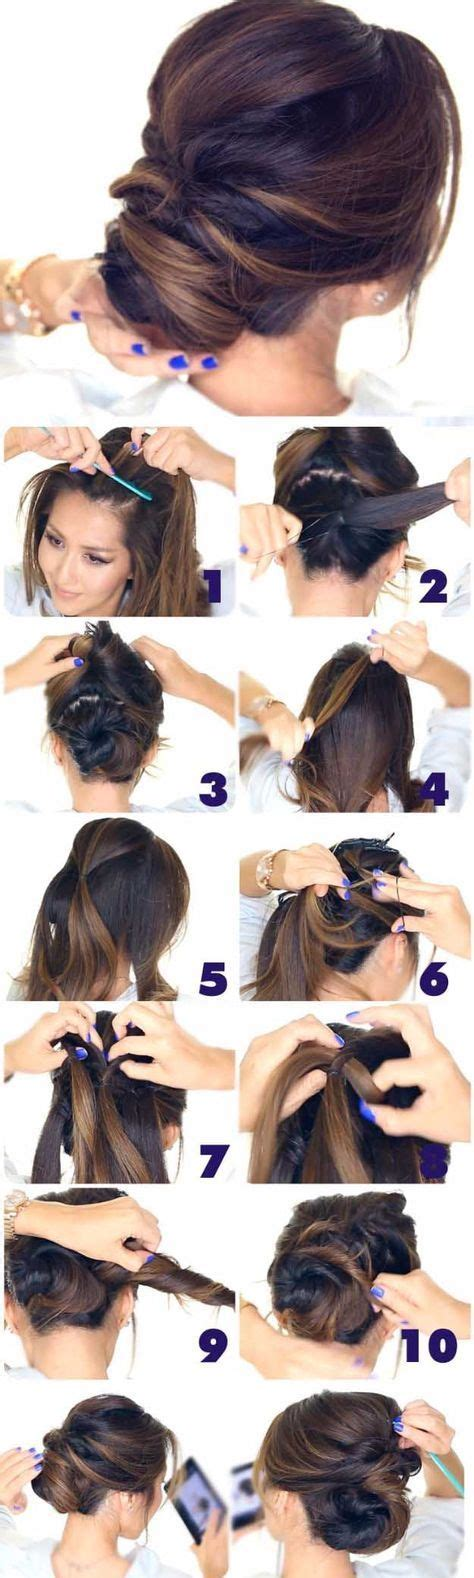 25 Best Ideas About Best Hairstyles On Pinterest Cool